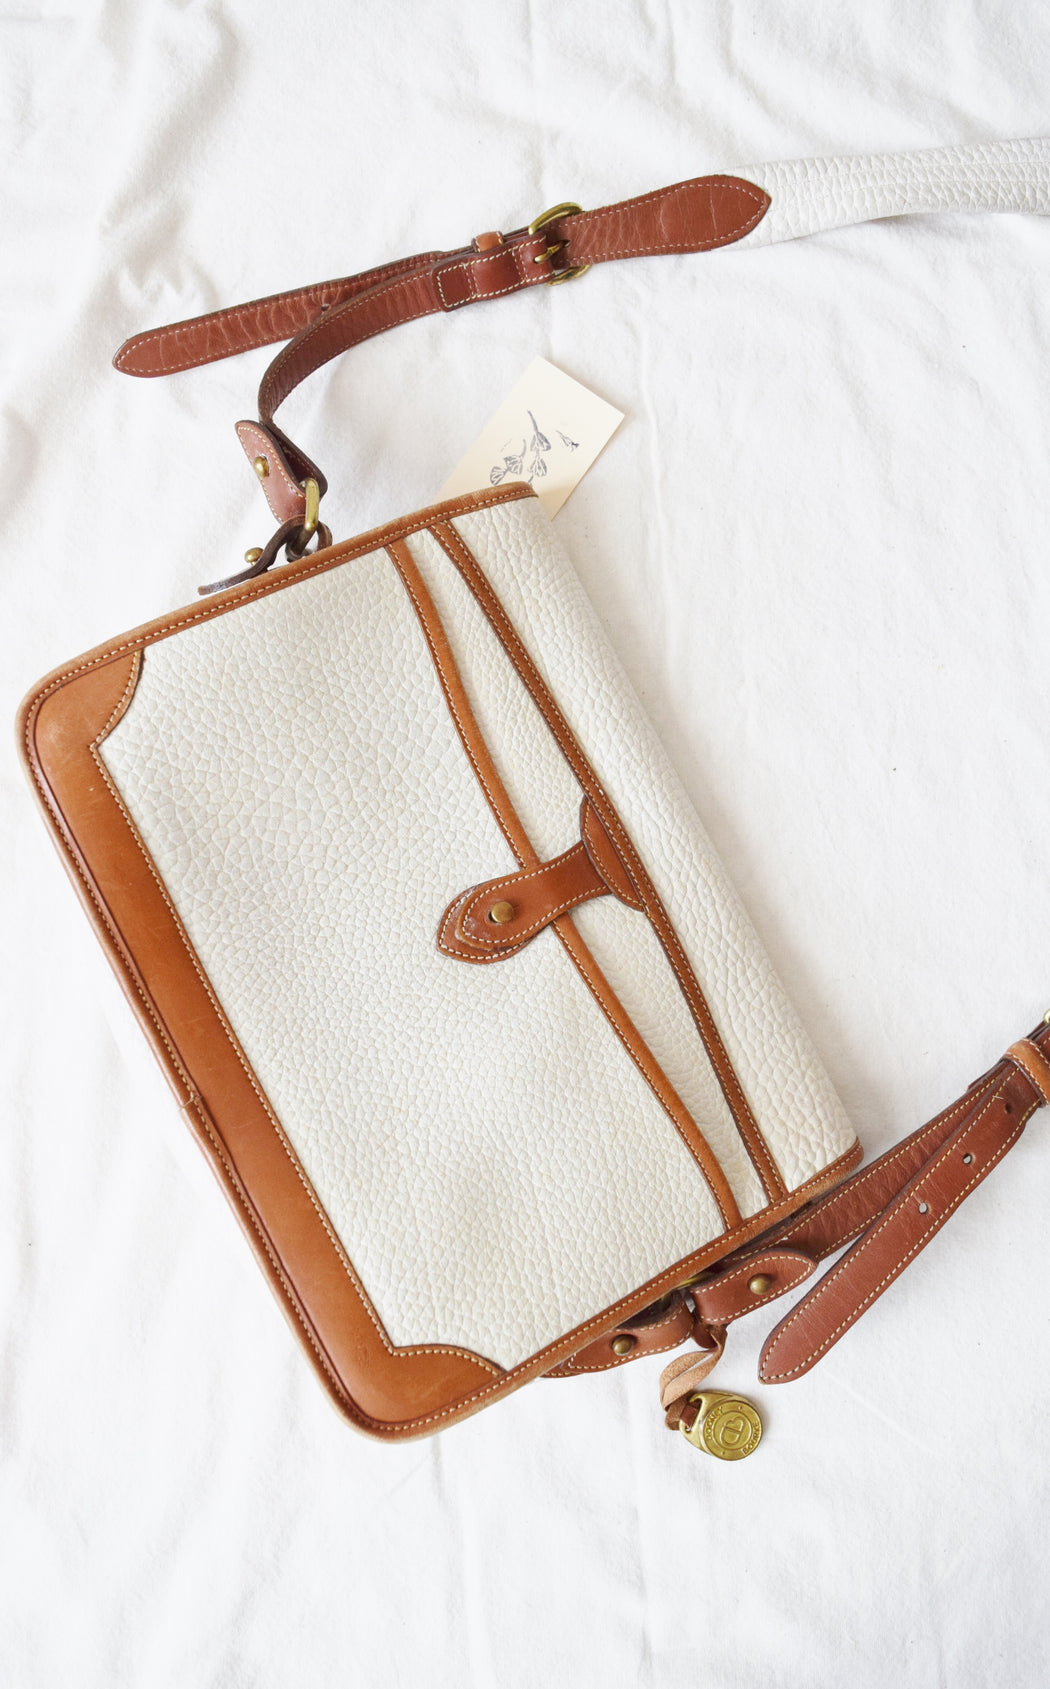 Vintage Dooney & Bourke All Weather Leather Crossbody Bag / Purse in White and British Tan